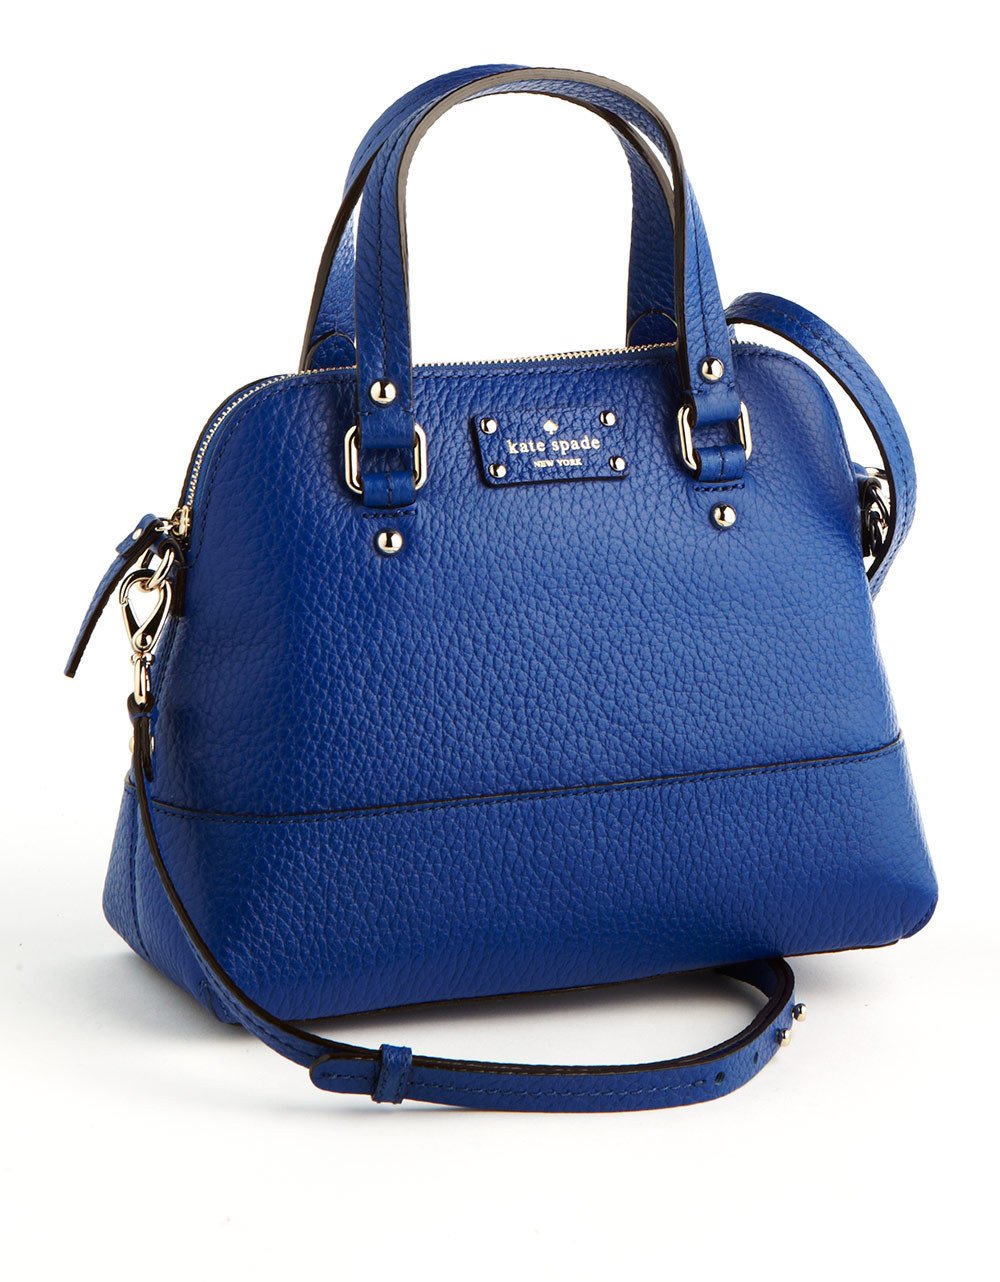 Kate spade new york Maise Leather Satchel Bag in Blue | Lyst